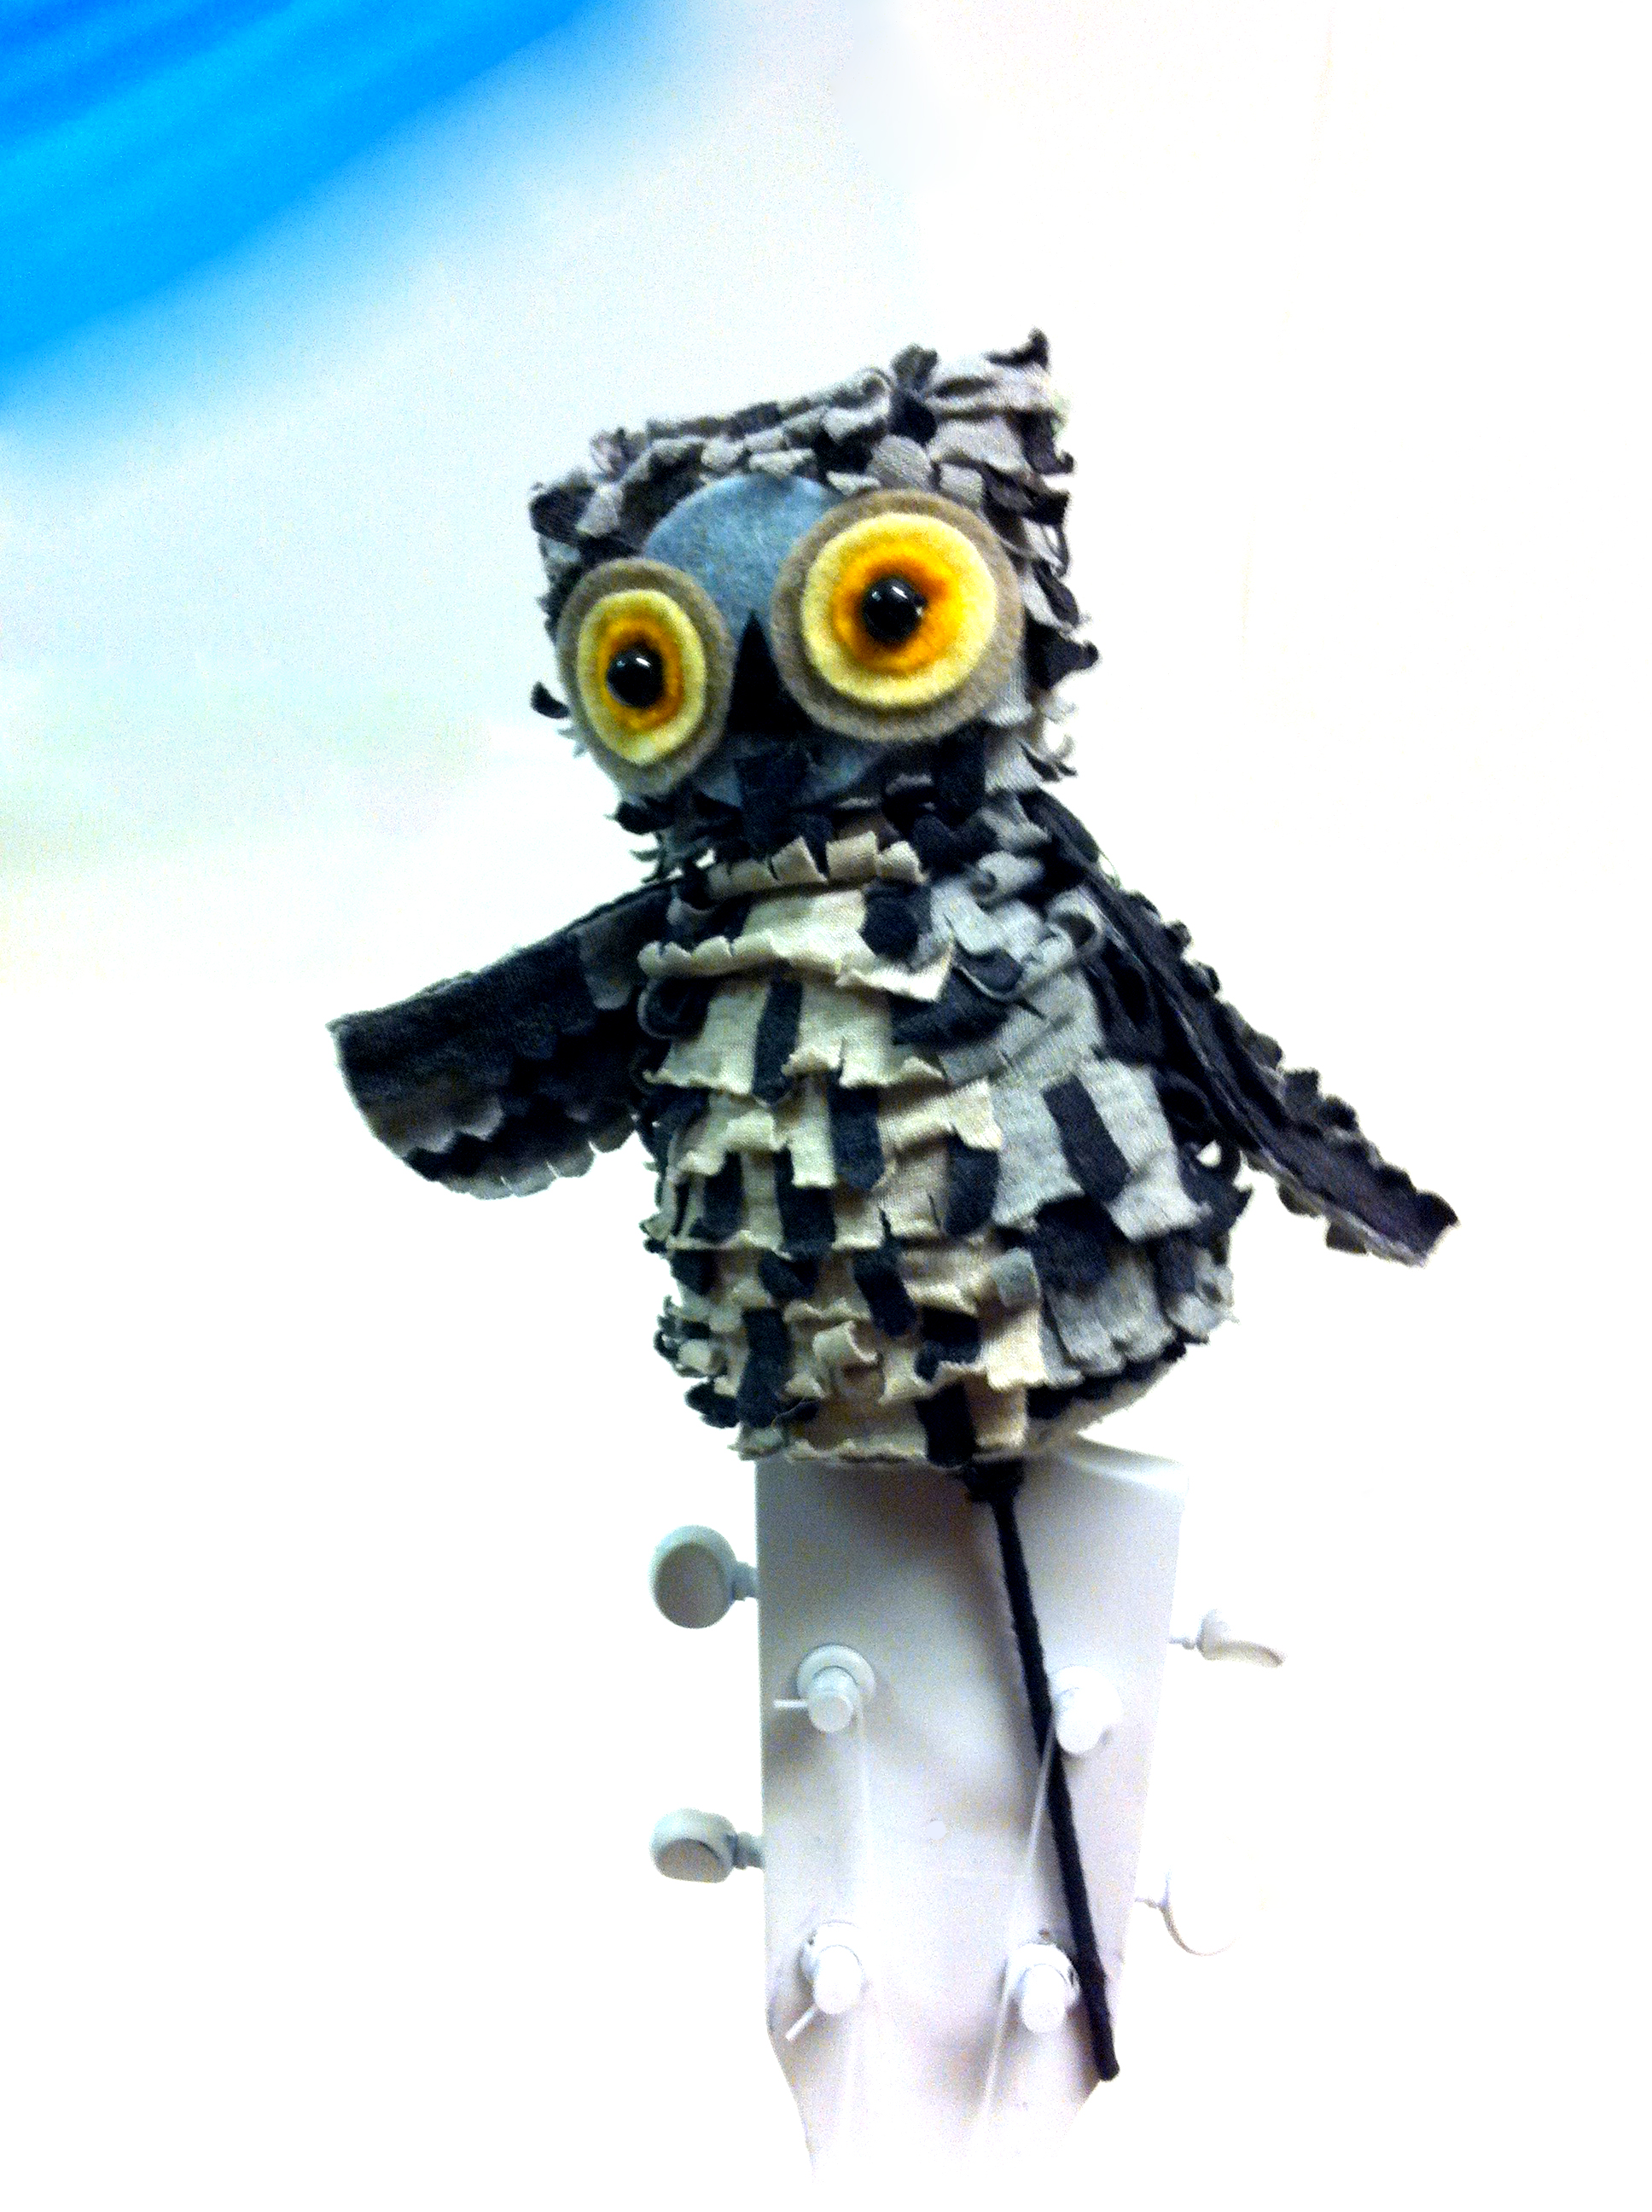 There are three different owl puppets used in the show, this is the smallest one.